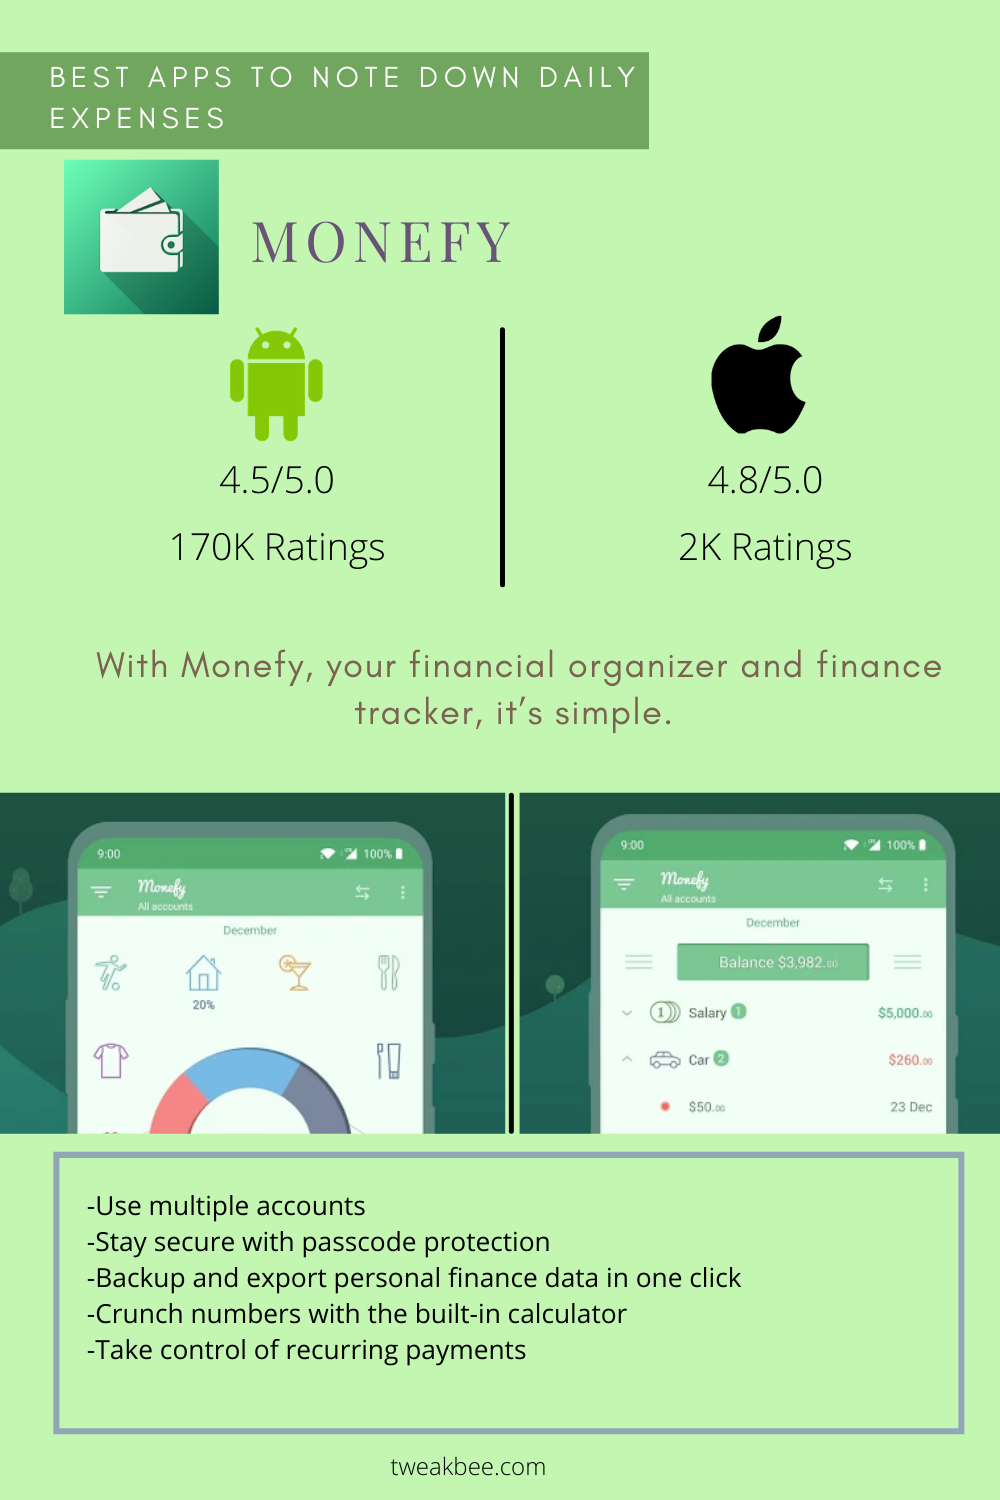 Monefy - Best Apps to Note Down Daily Expenses